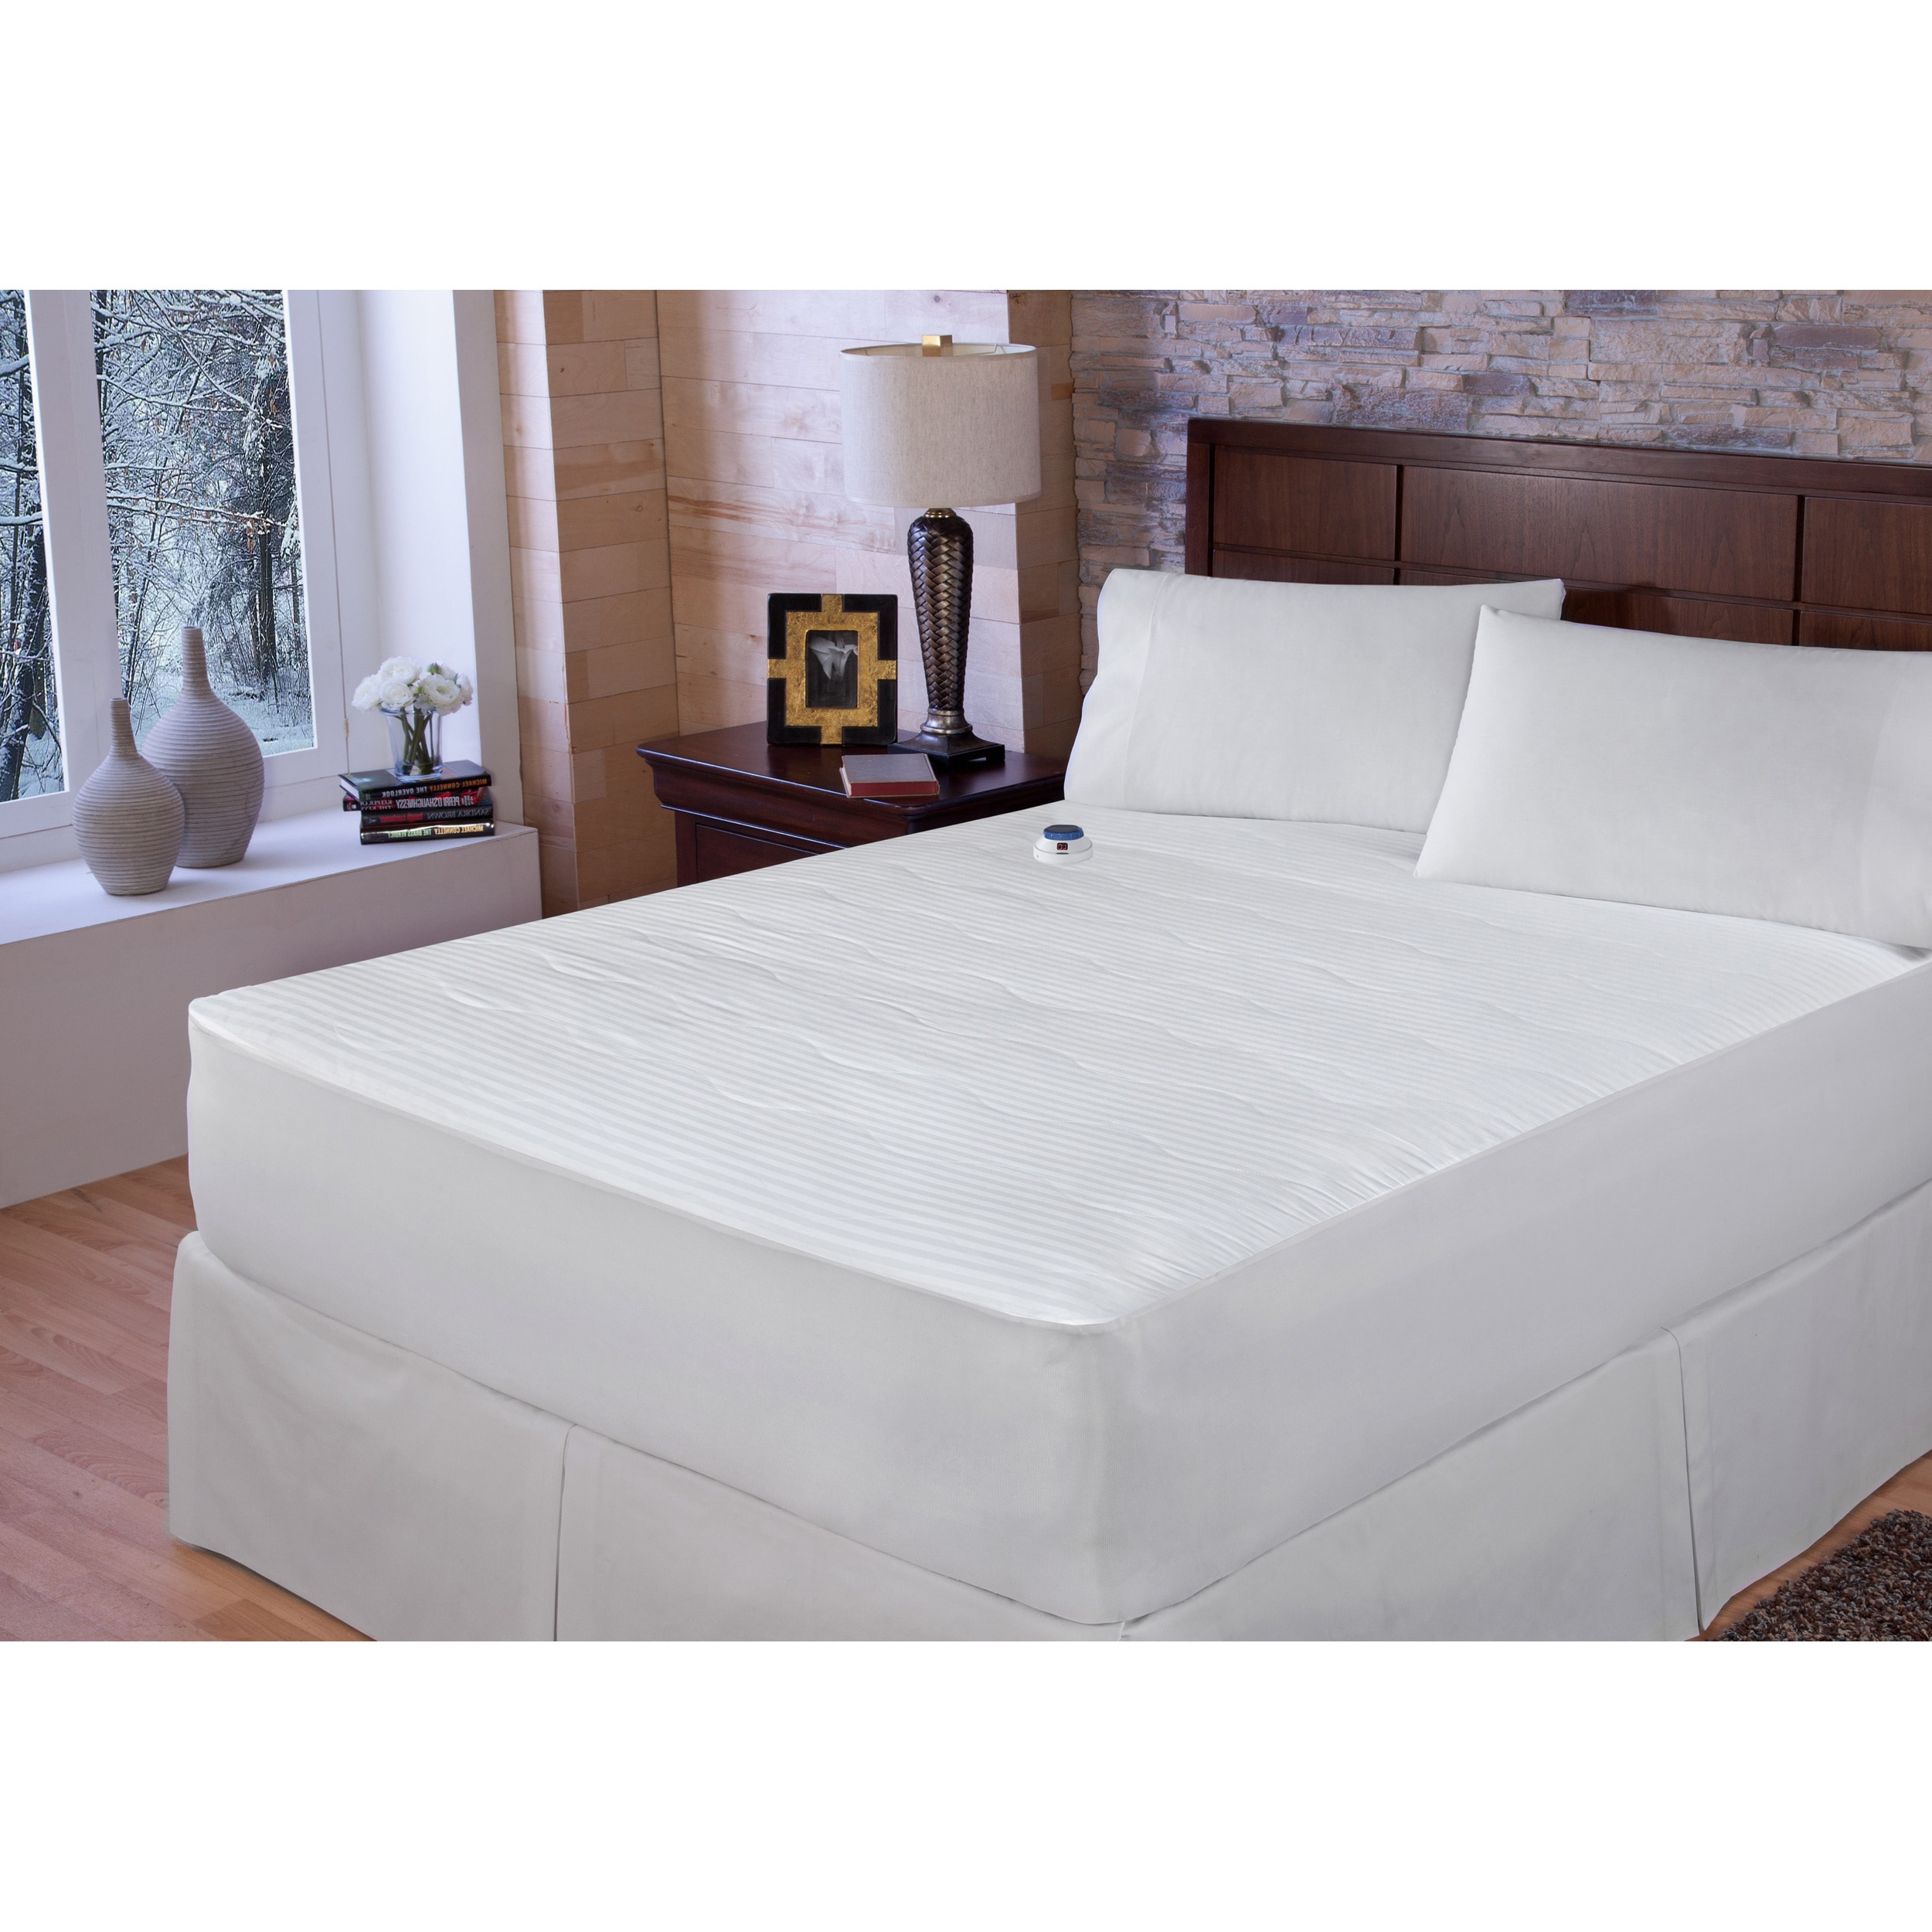 appealing mattress mattresses king recharge sealys restonic world hybrid hospitality top and felicity stock sale class pillow of myers best gallery guide luxury by firm black ideas simmons bedding size price great plaints inspirational super about page with reviews skyridge beautyrest pillowtop